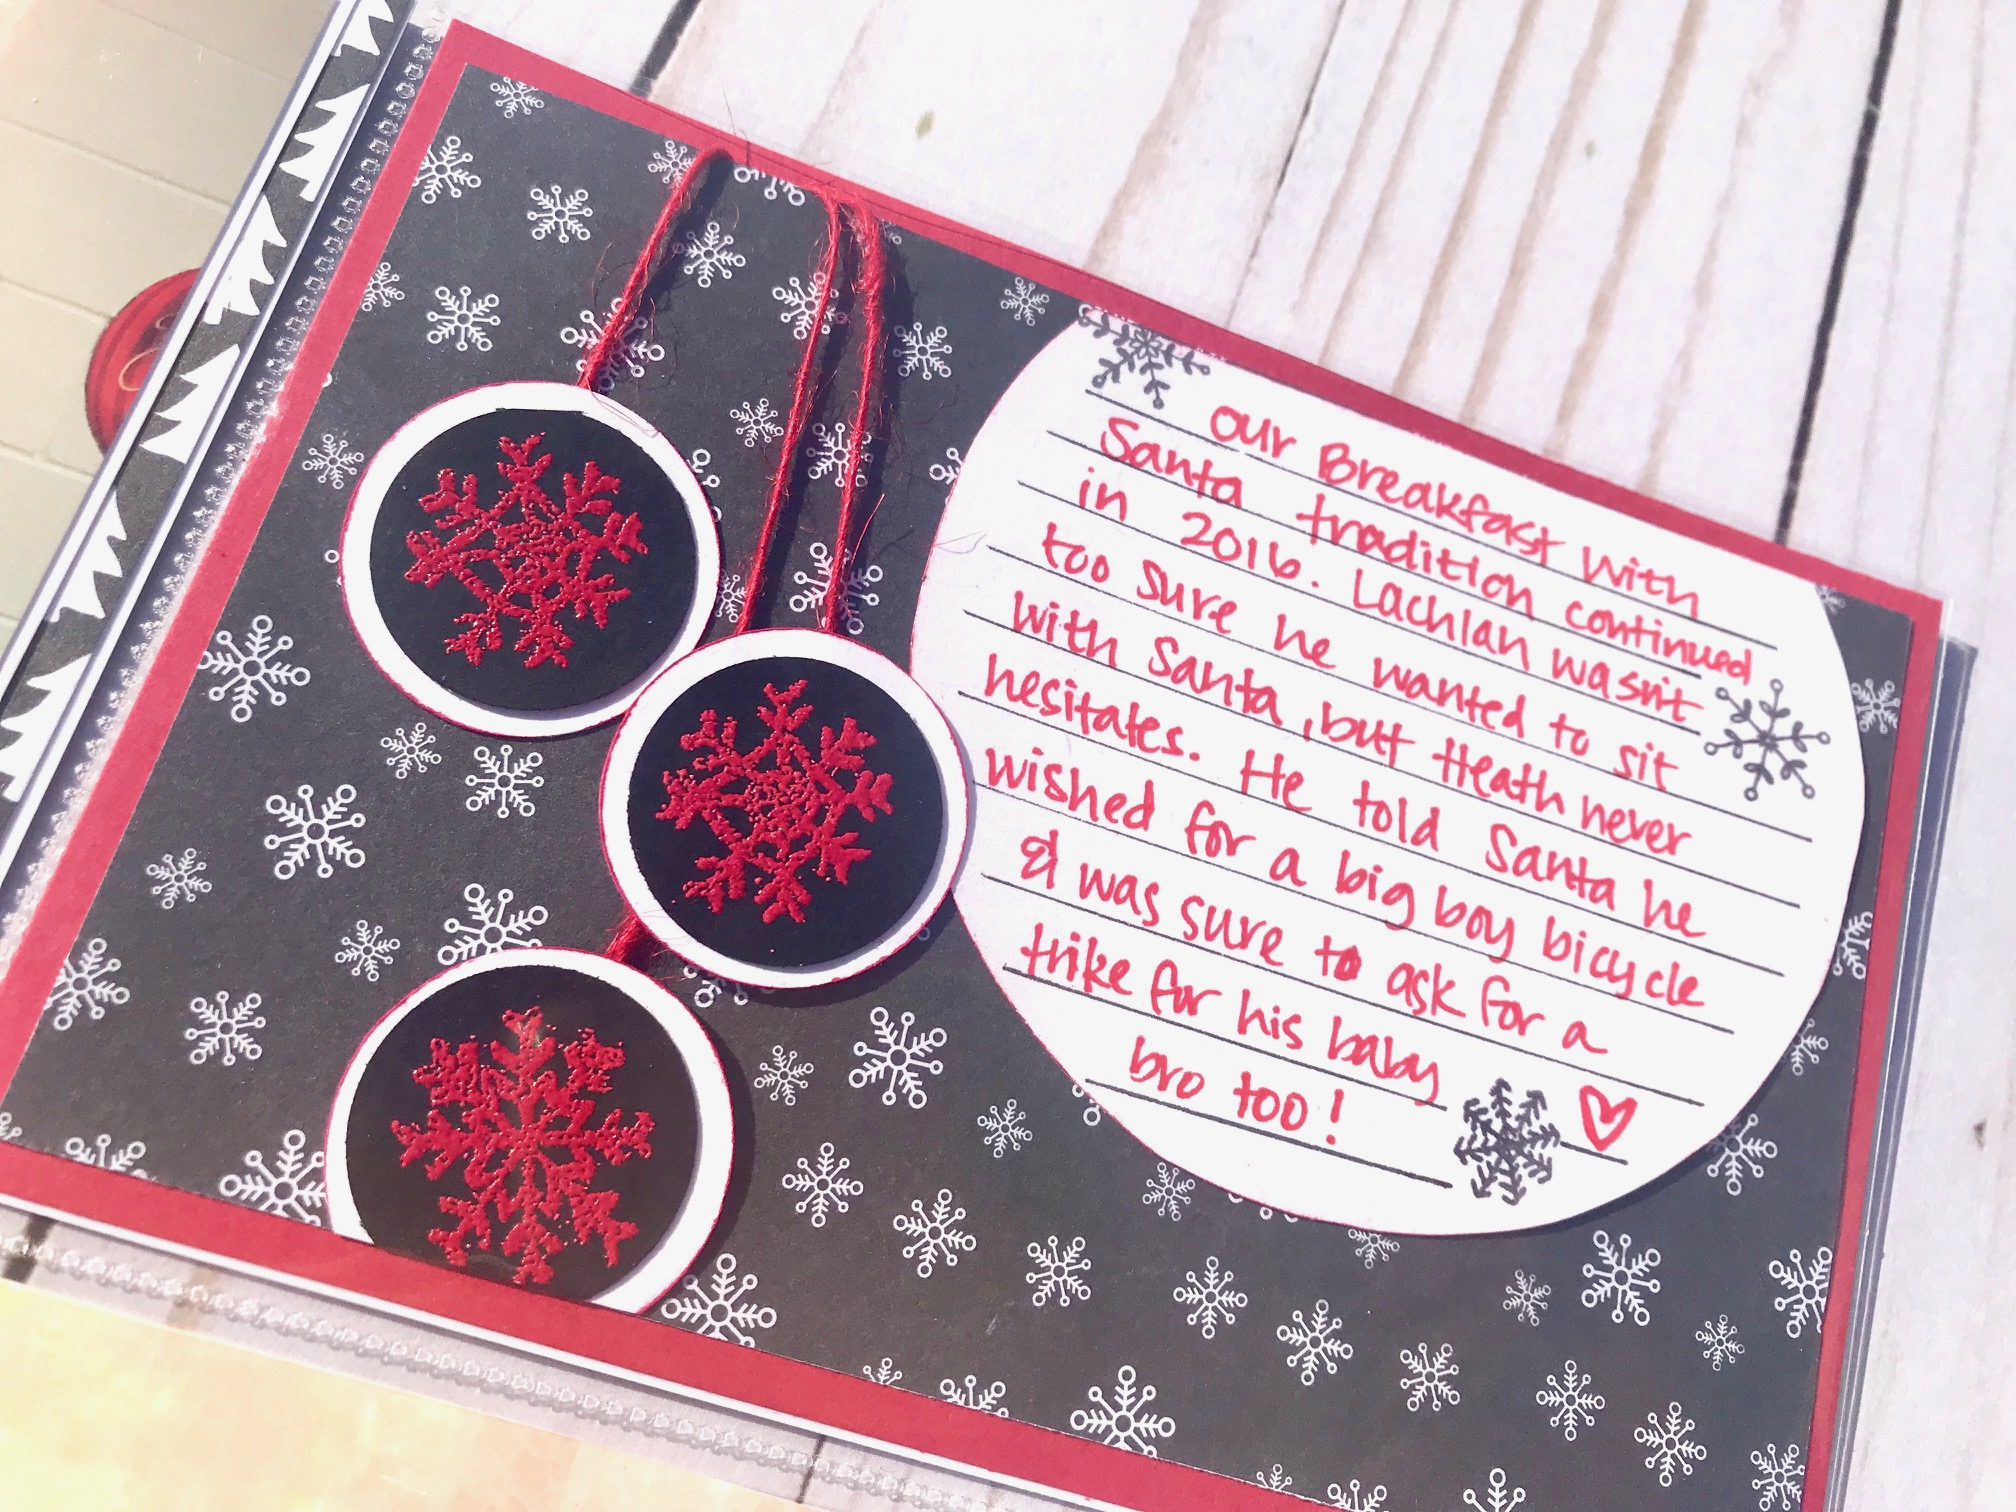 #stamping #embossing #happyholladays #Christmas #Christmasscrapbook #Christmasstamping